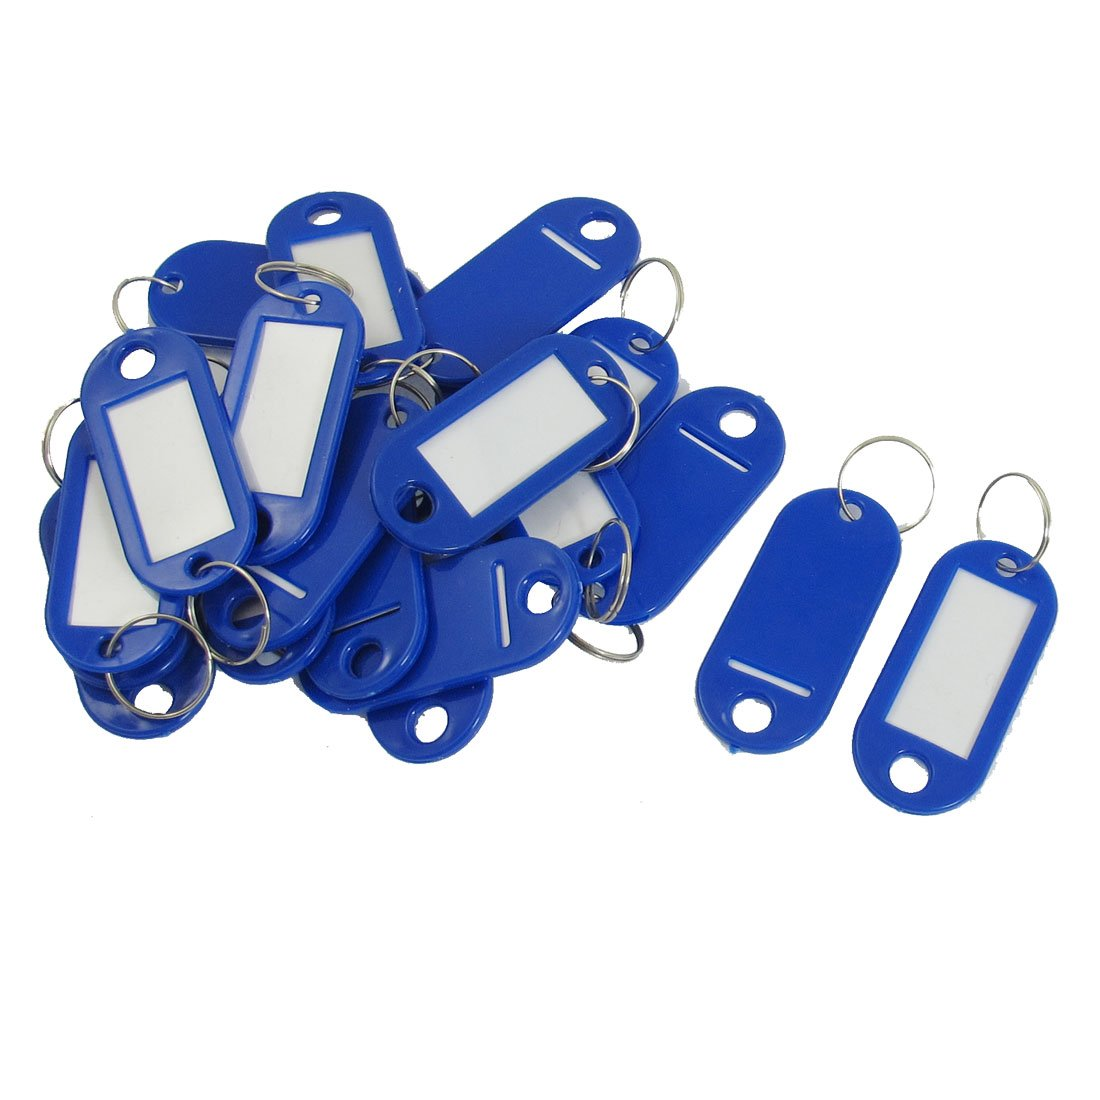 SOSW-20 Pcs Plastic Key Tags Assorted Key Rings ID Tags Name Card Fob Label For Office Supplies New